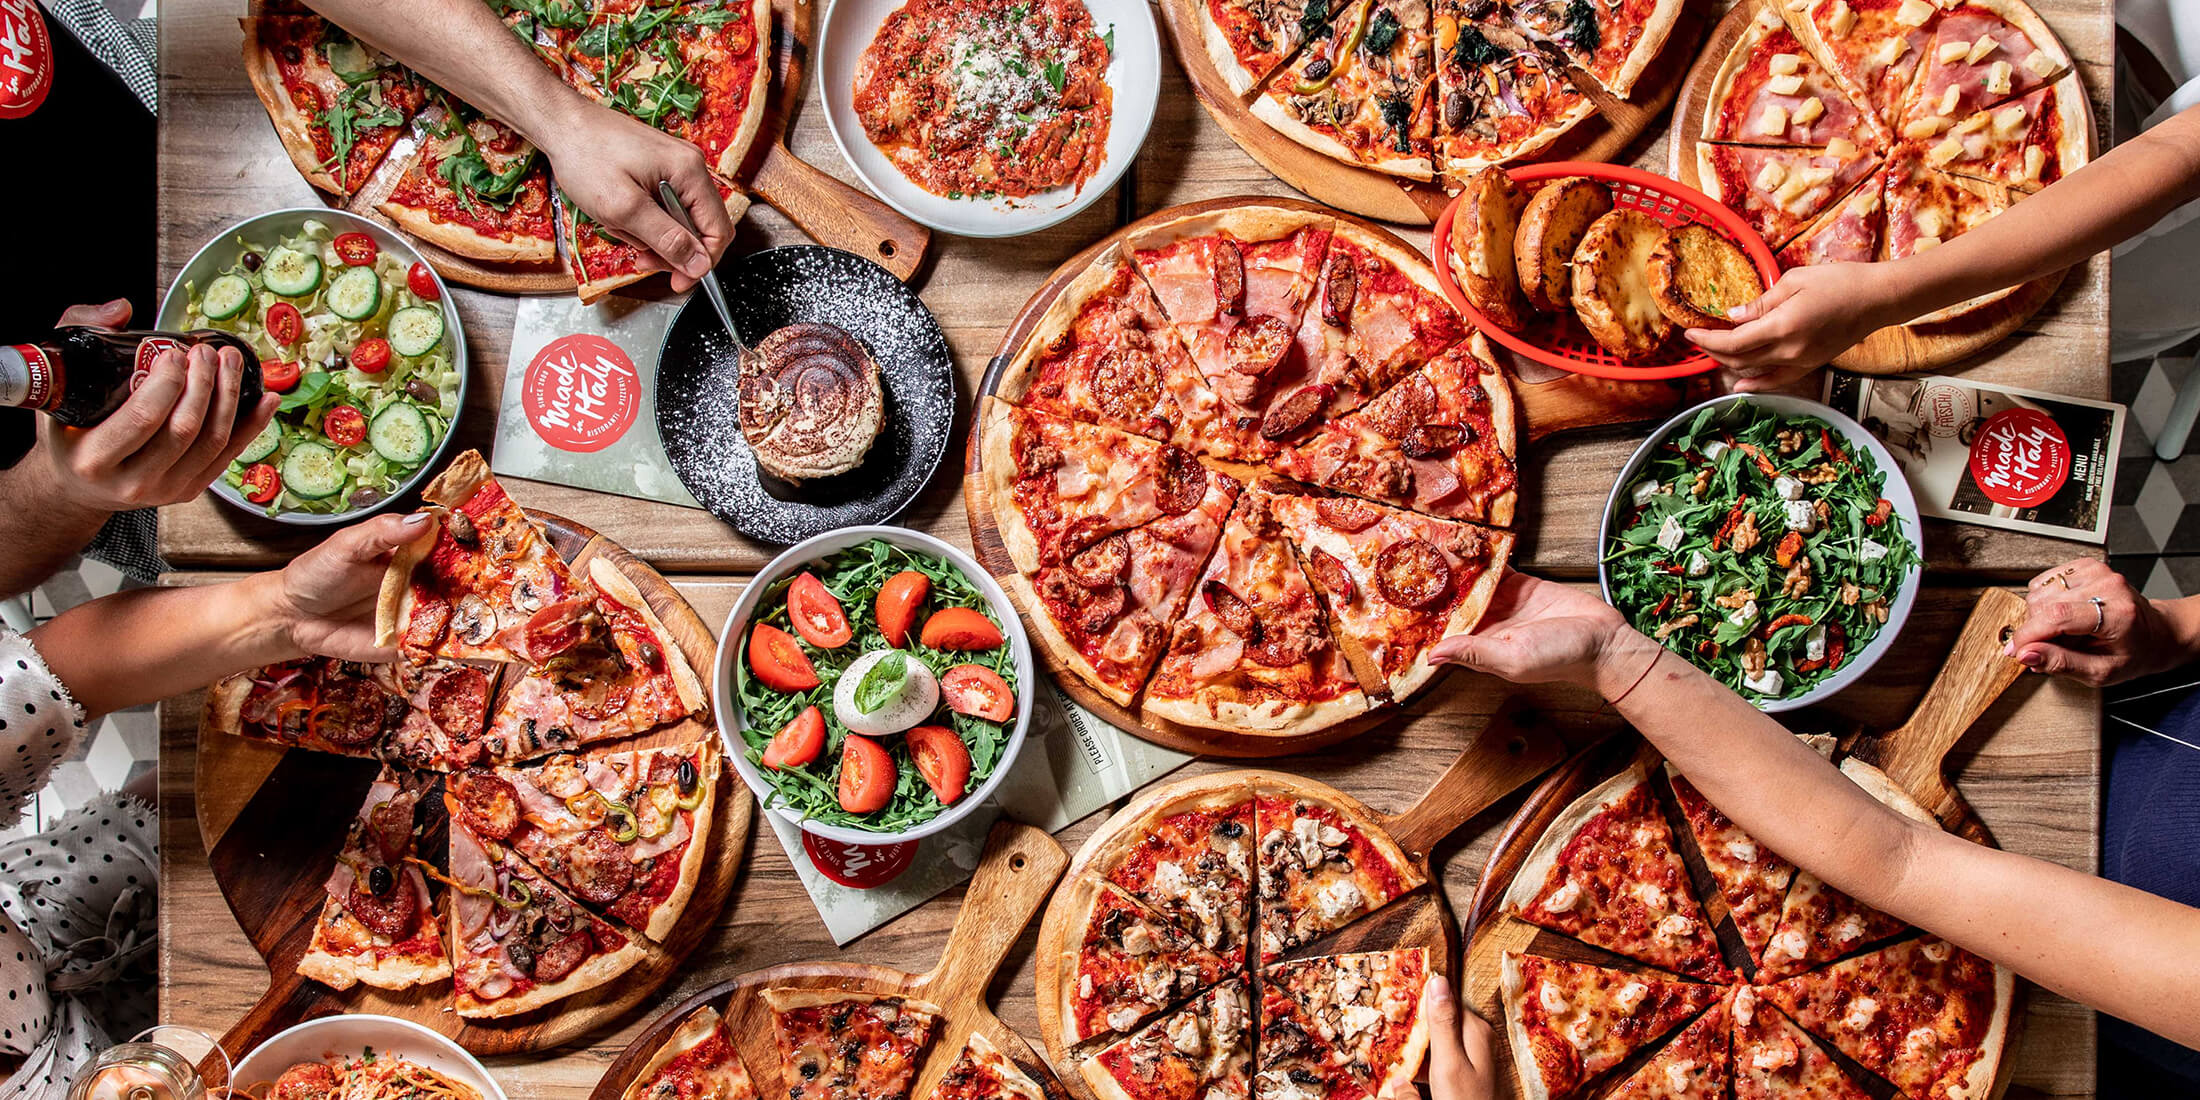 We deliver Italian pizza and pasta in Redfern!